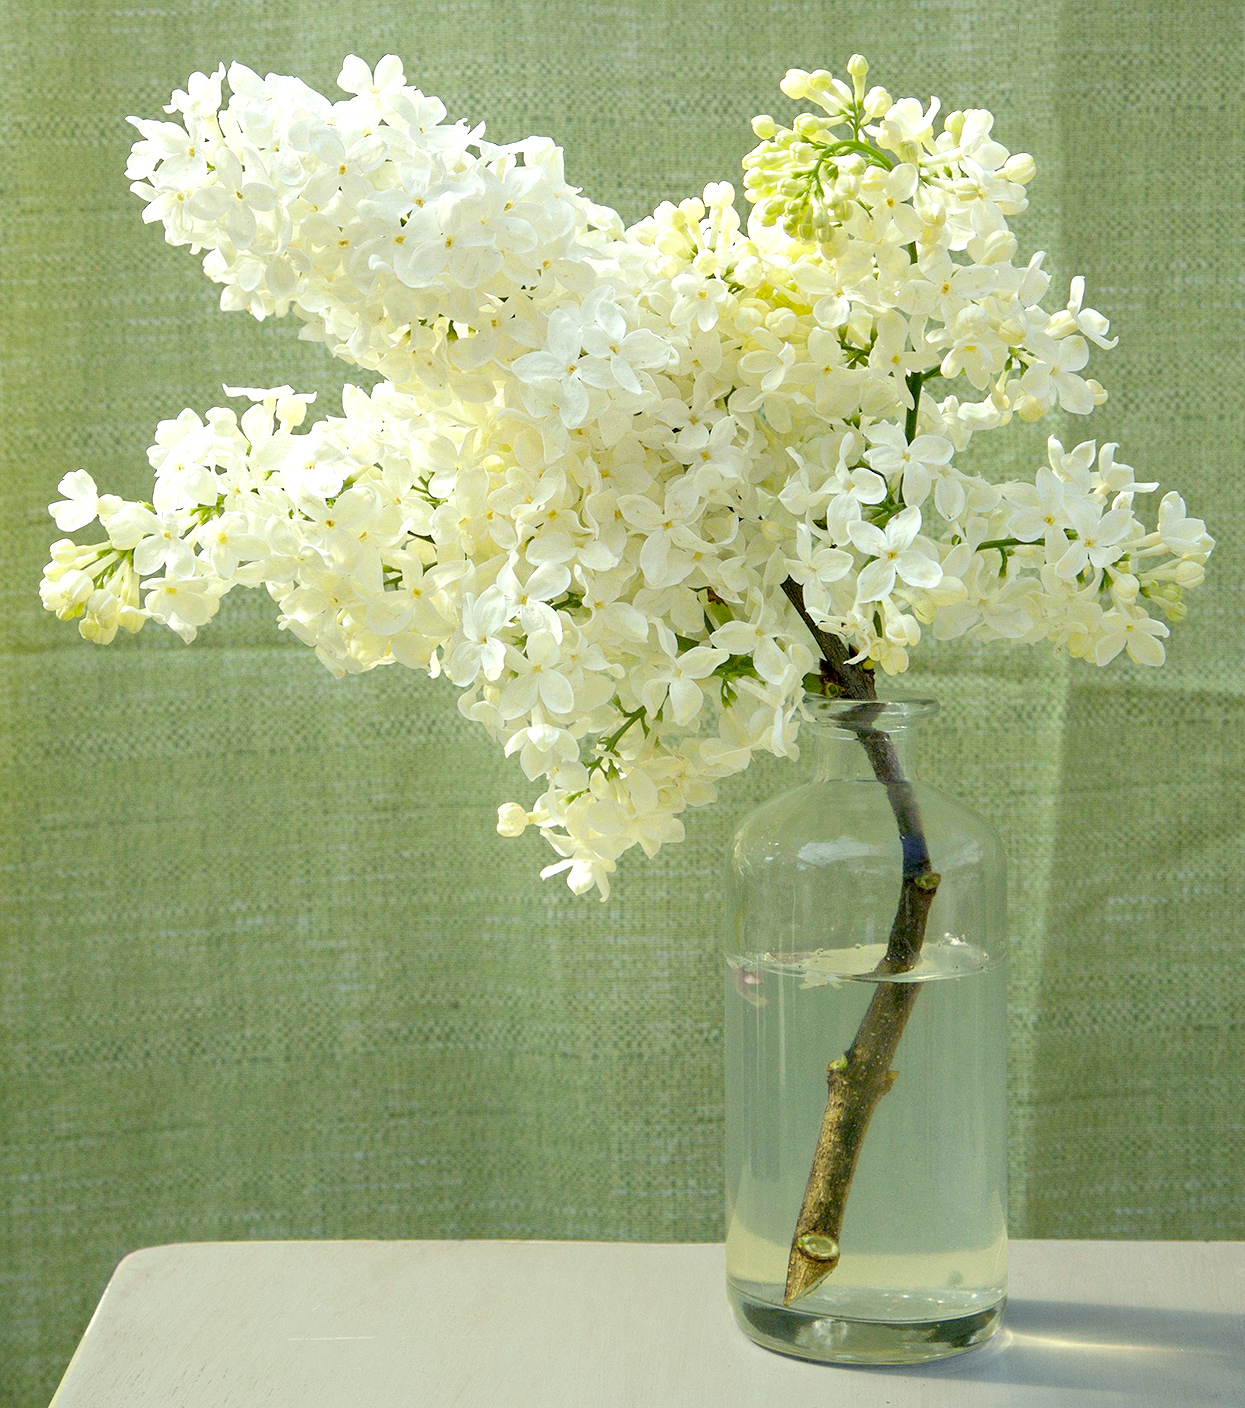 yellow Syringa 'Primrose' lilac cutting in vase